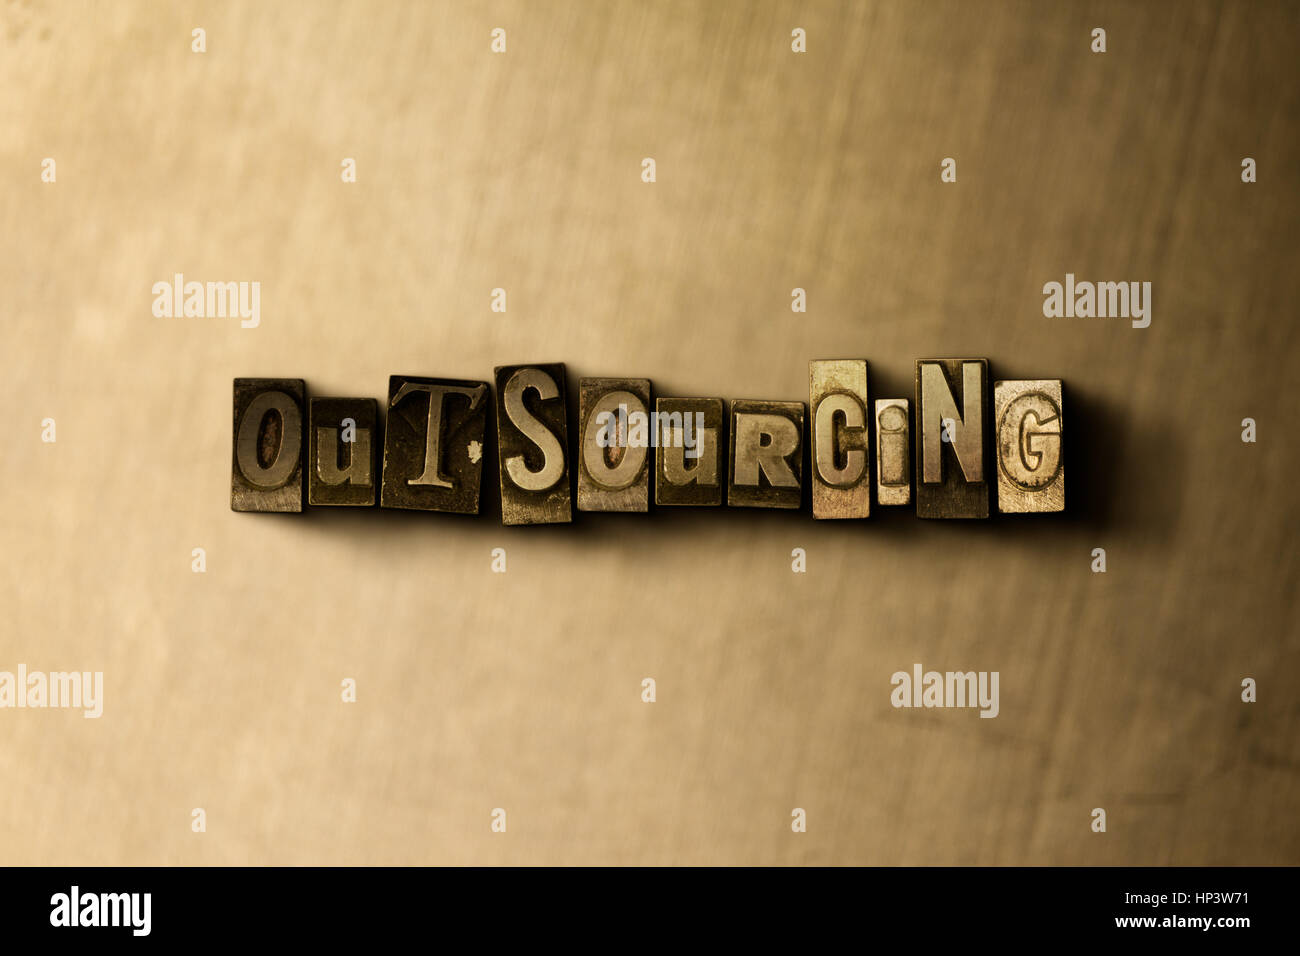 OUTSOURCING - close-up of grungy vintage typeset word on metal backdrop. Royalty free stock illustration.  Can be - Stock Image